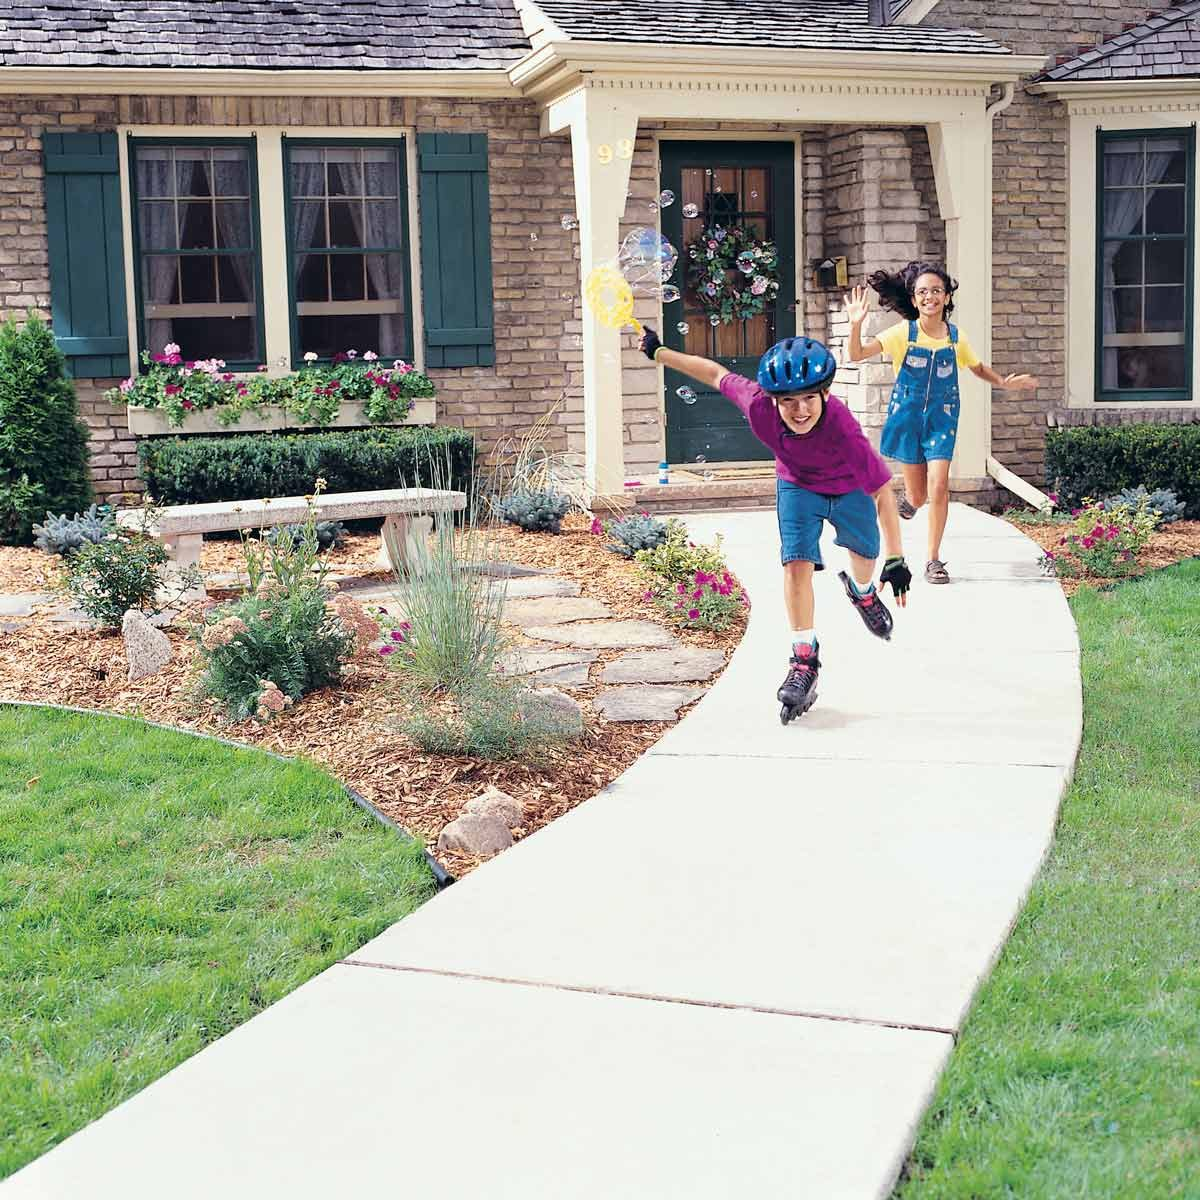 hight resolution of concrete sidewalk kids roller blading playing outside concrete walkway cost cost of sidewalk